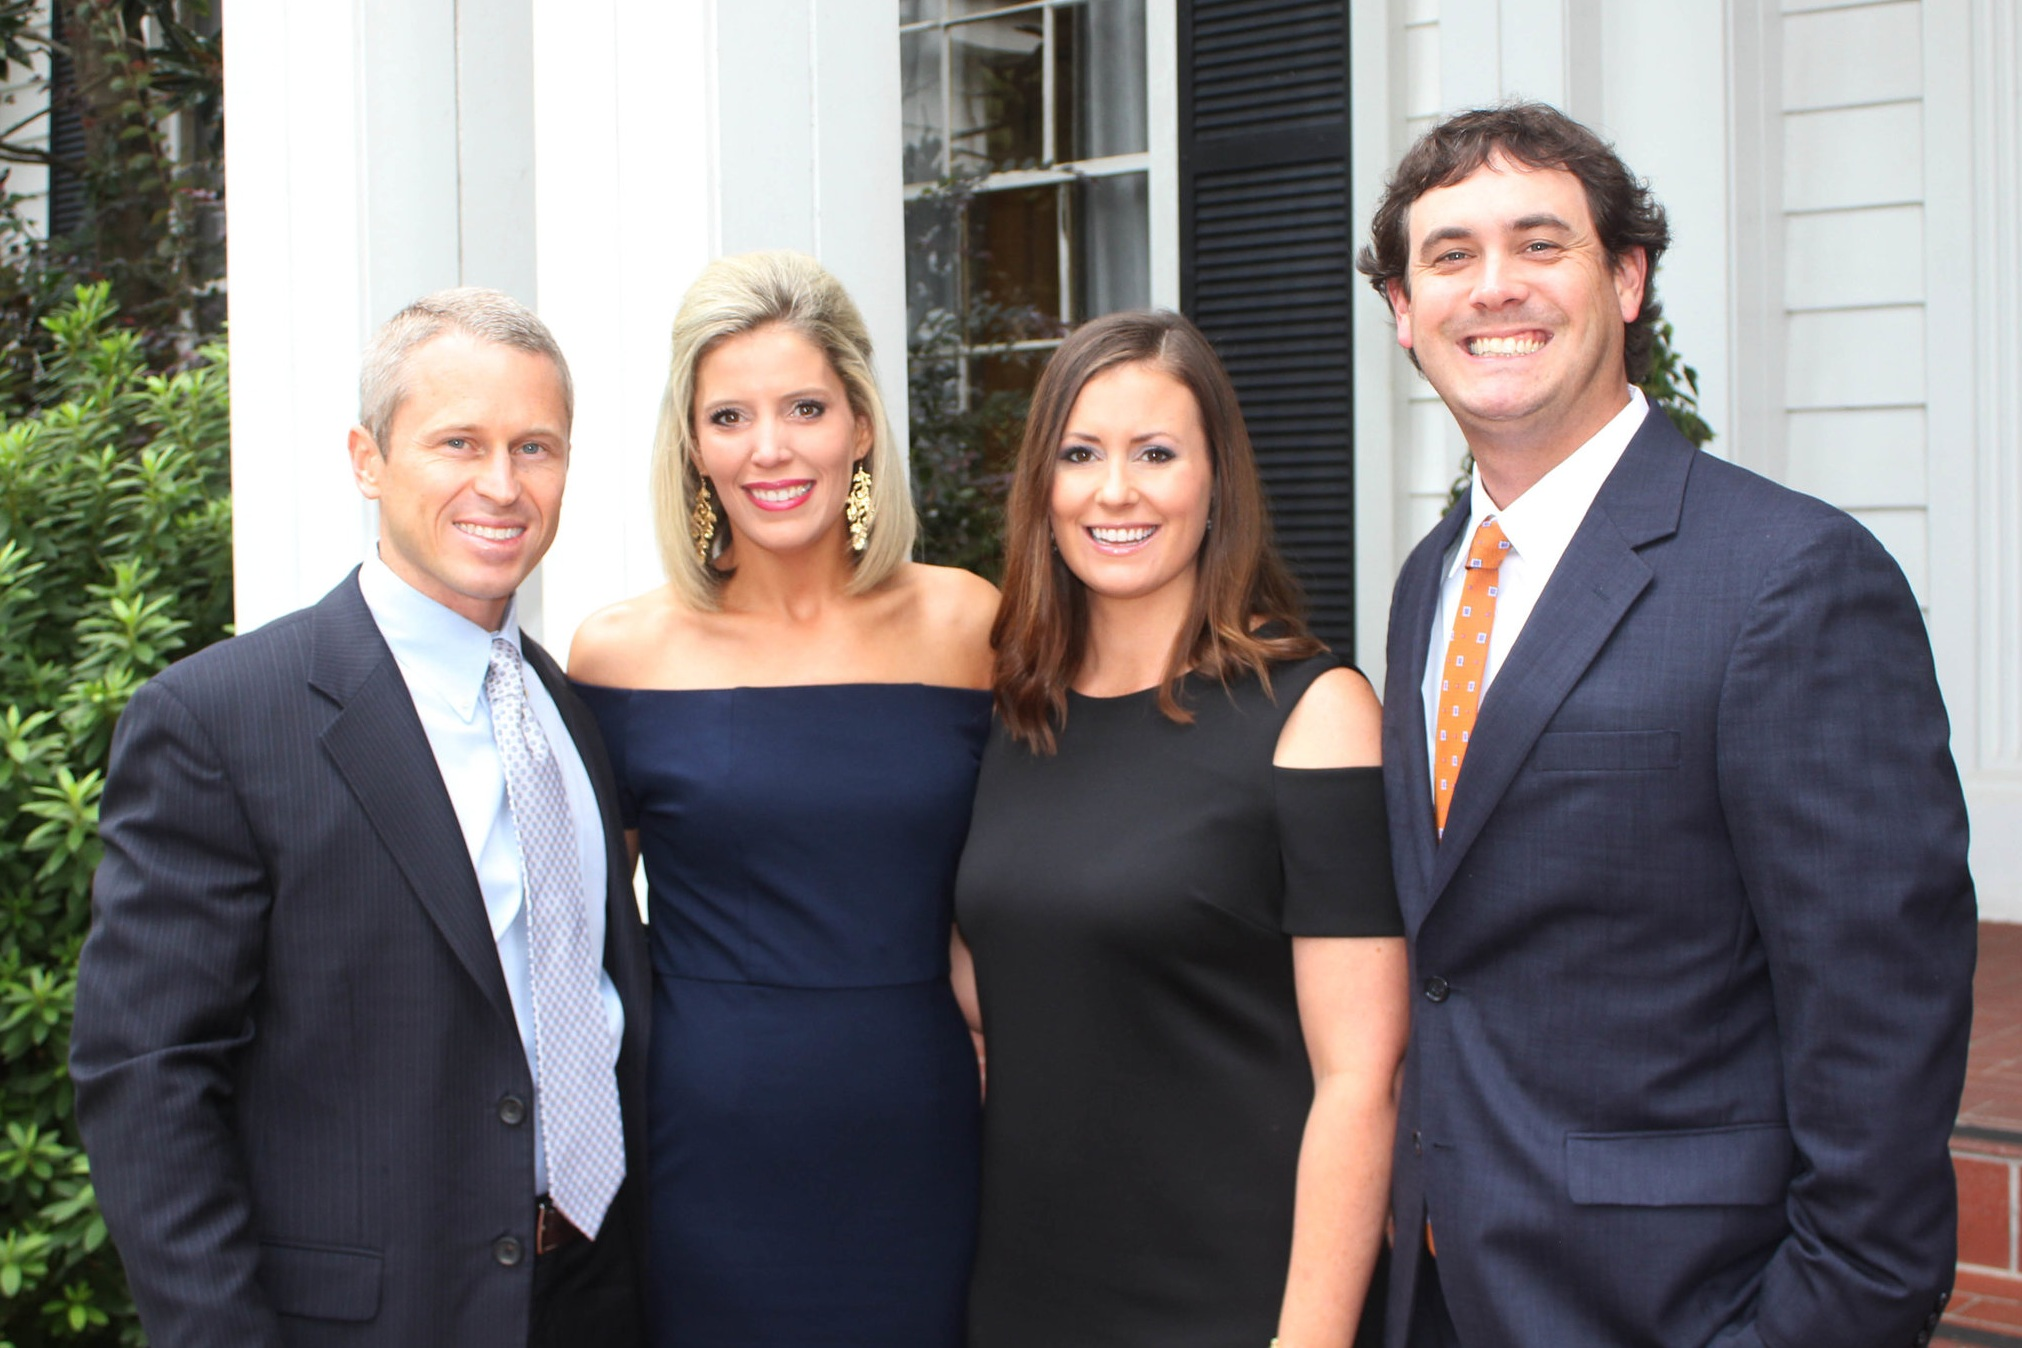 John and Kelley and Lauren and Chris during the Women for A&M-Texarkana's 13th annual Gourmet Dinner and Auction on August 26, 2017.